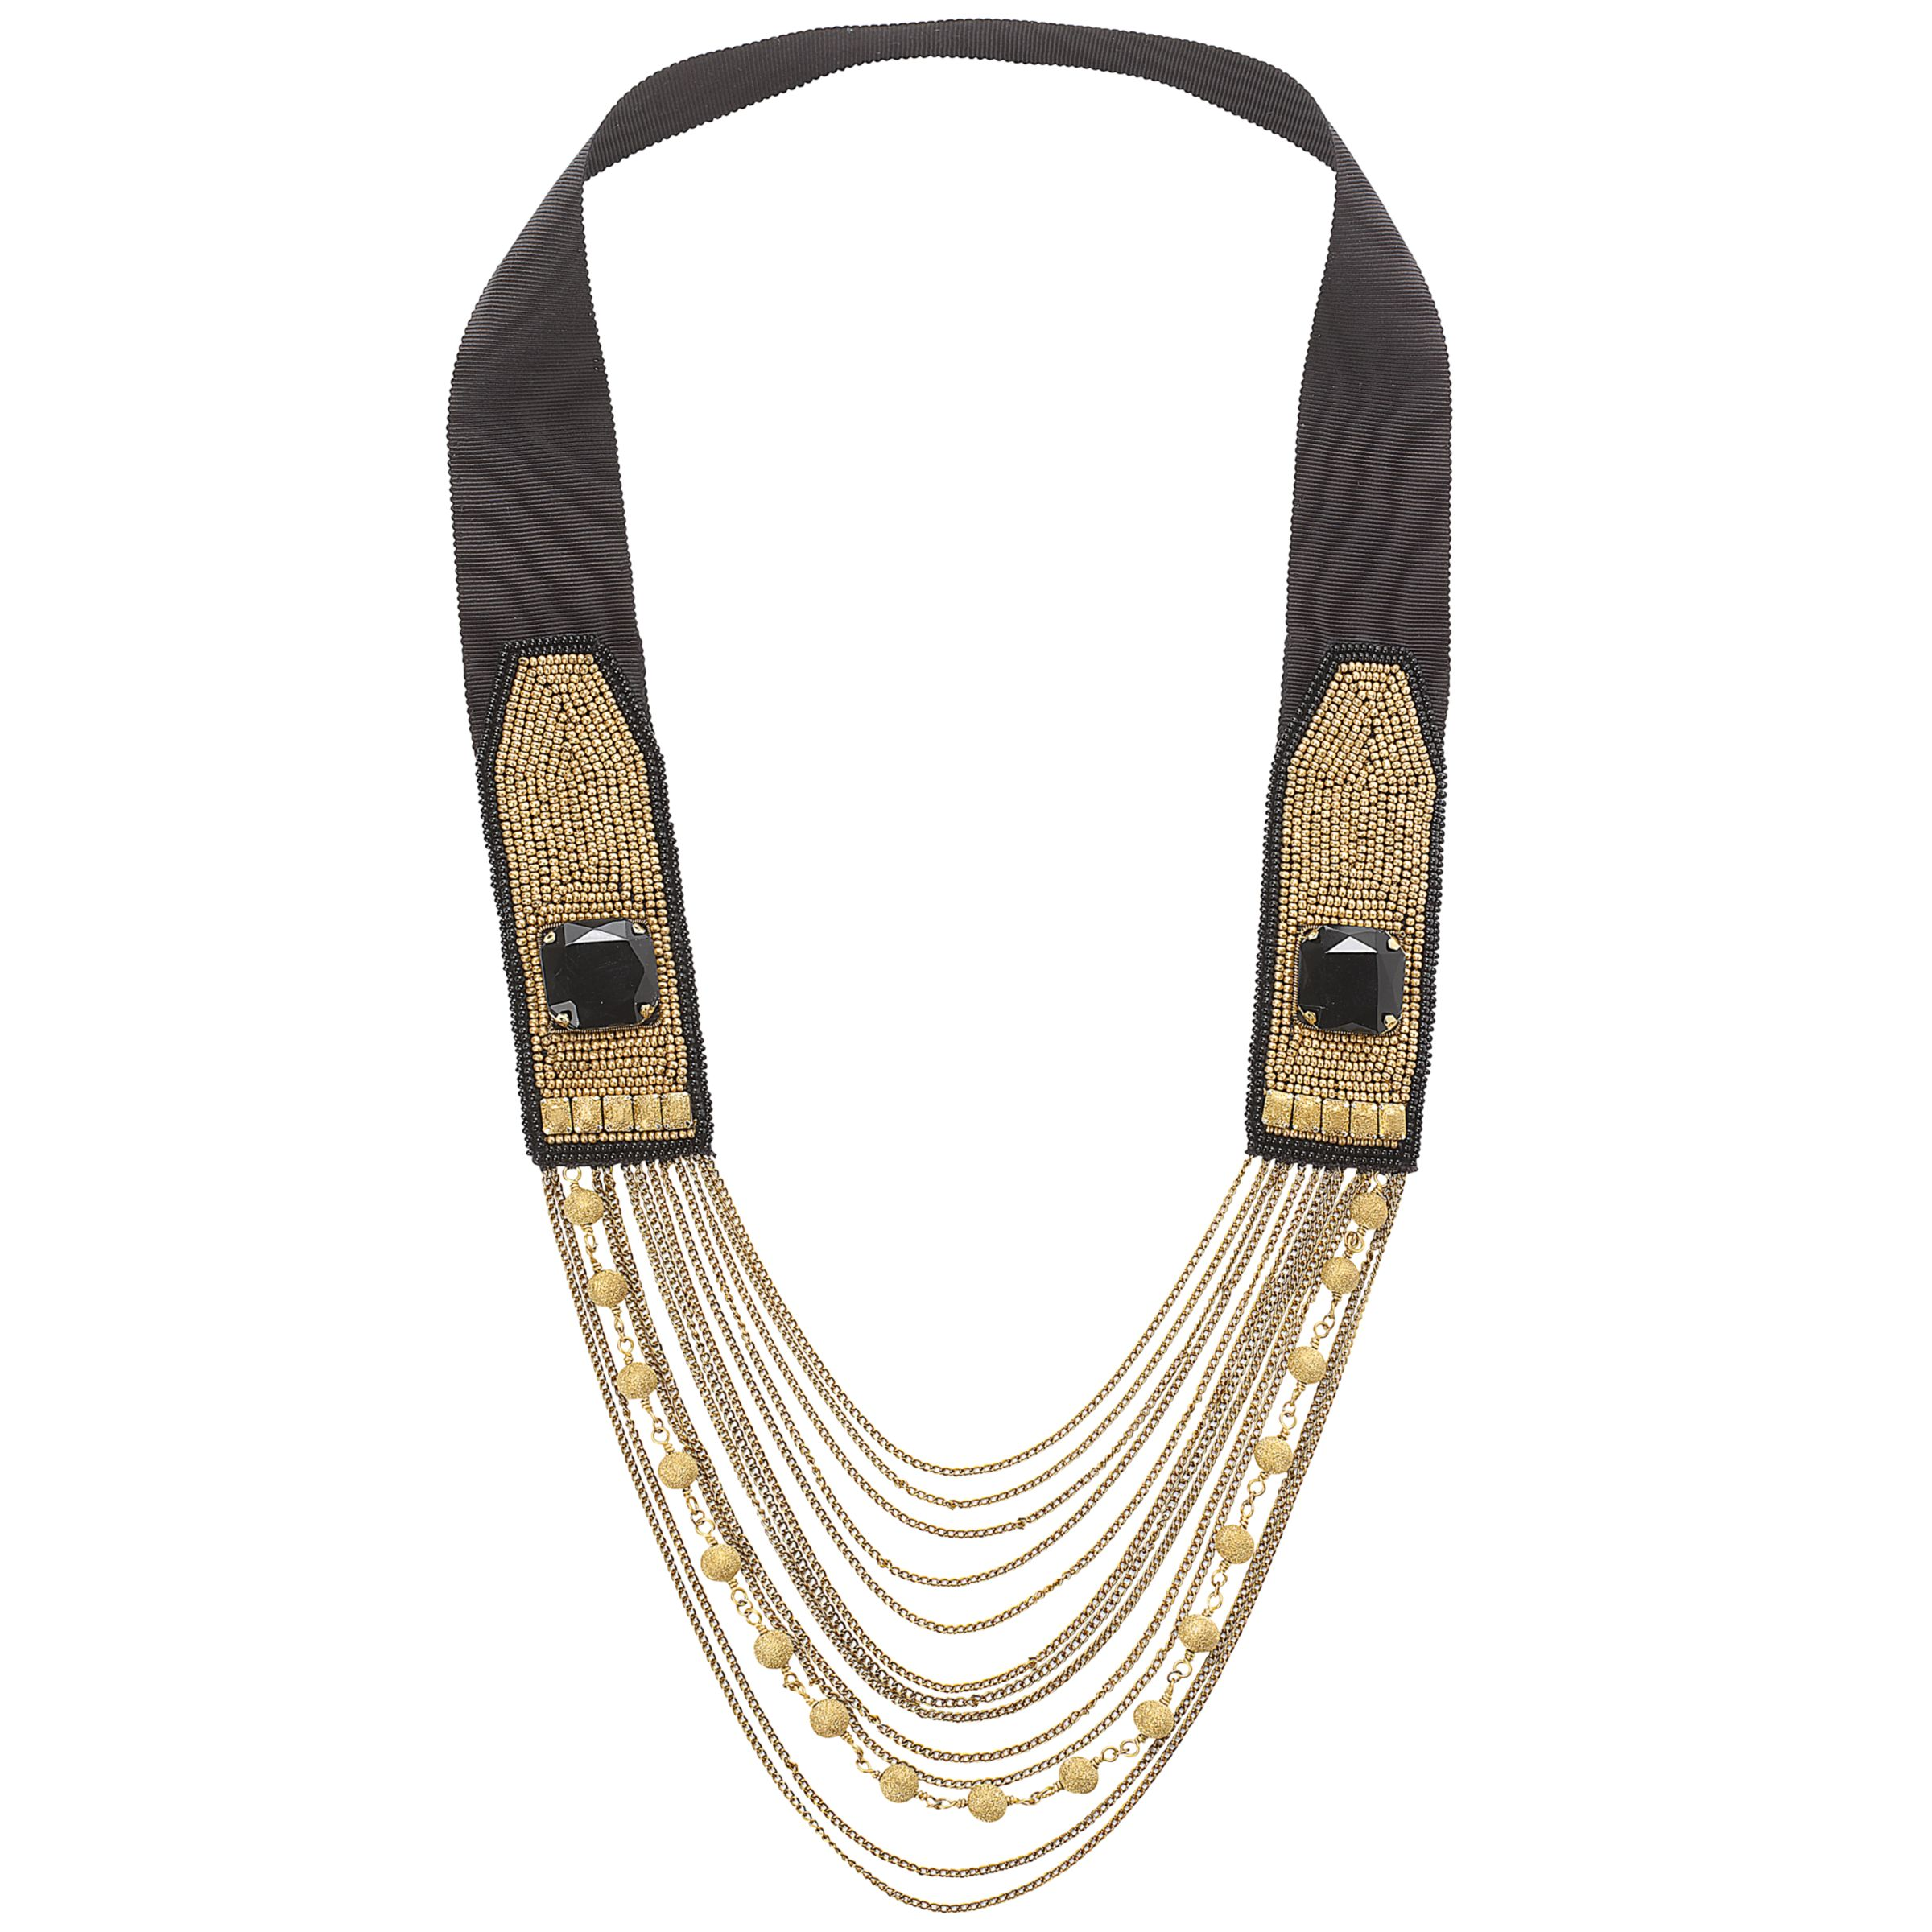 Fiona Paxton Maude Square Bead Multi Chain Necklace, Black/Gold